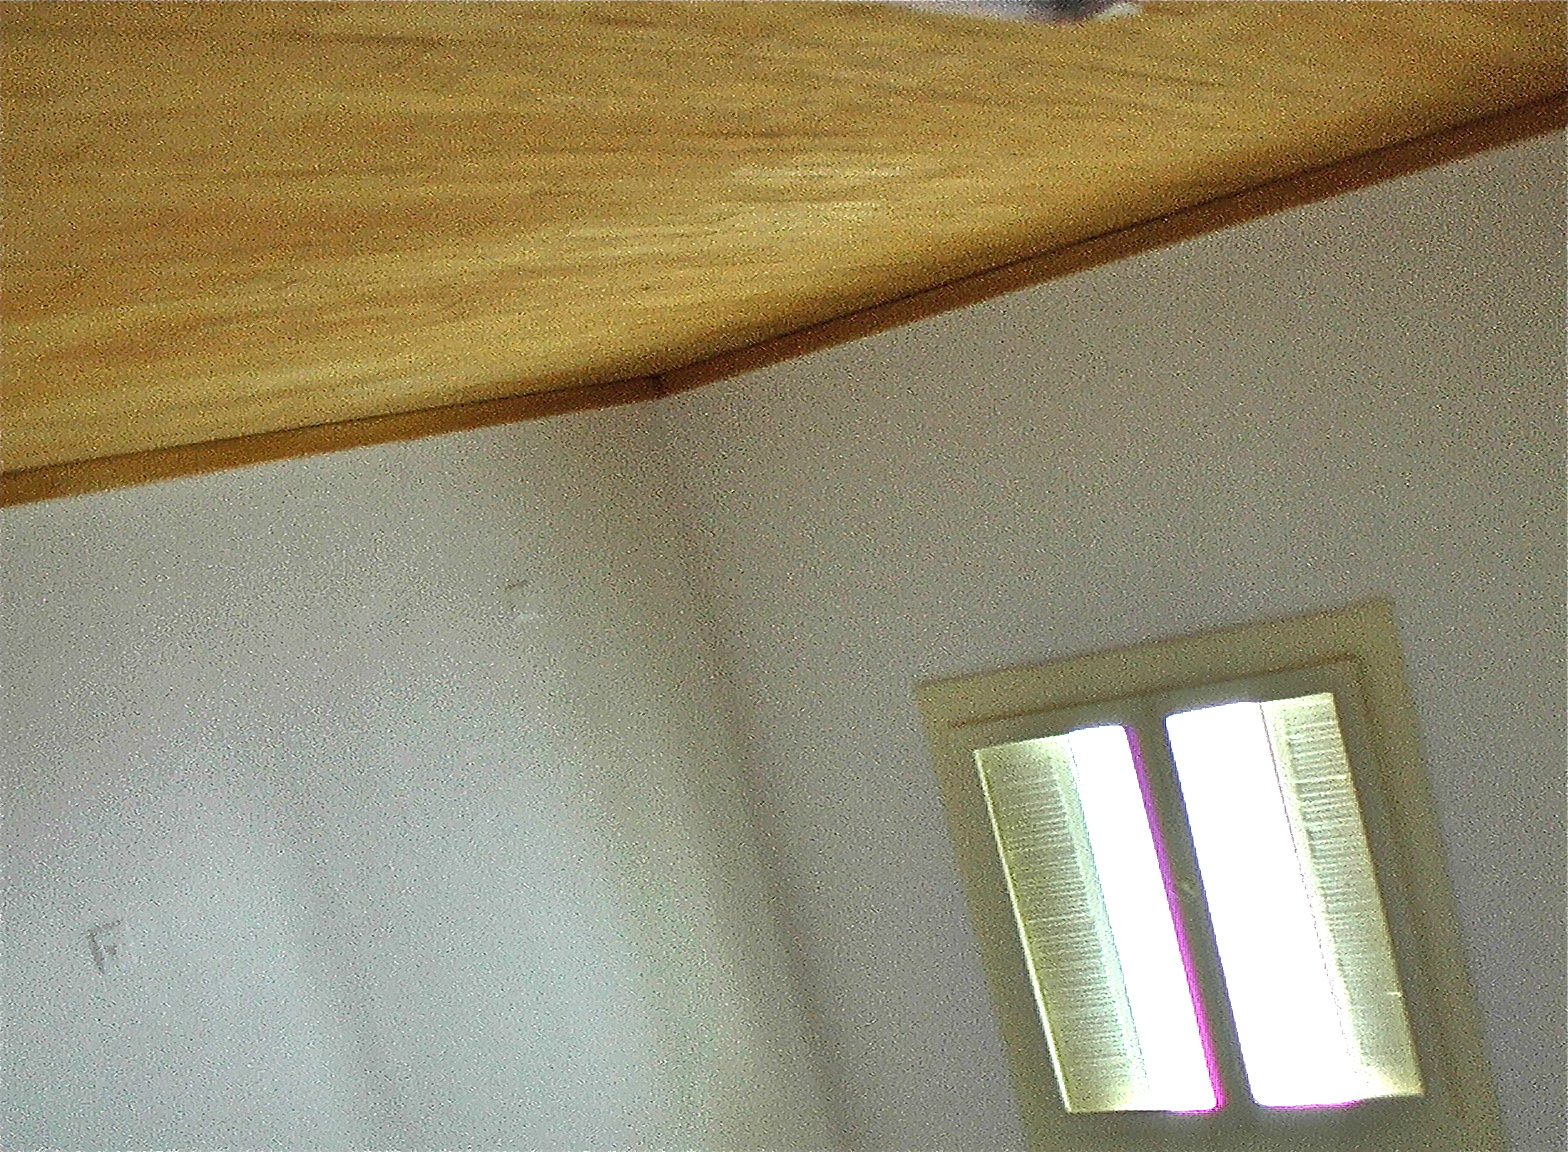 2004 the view from bed,interior 3 .jpg